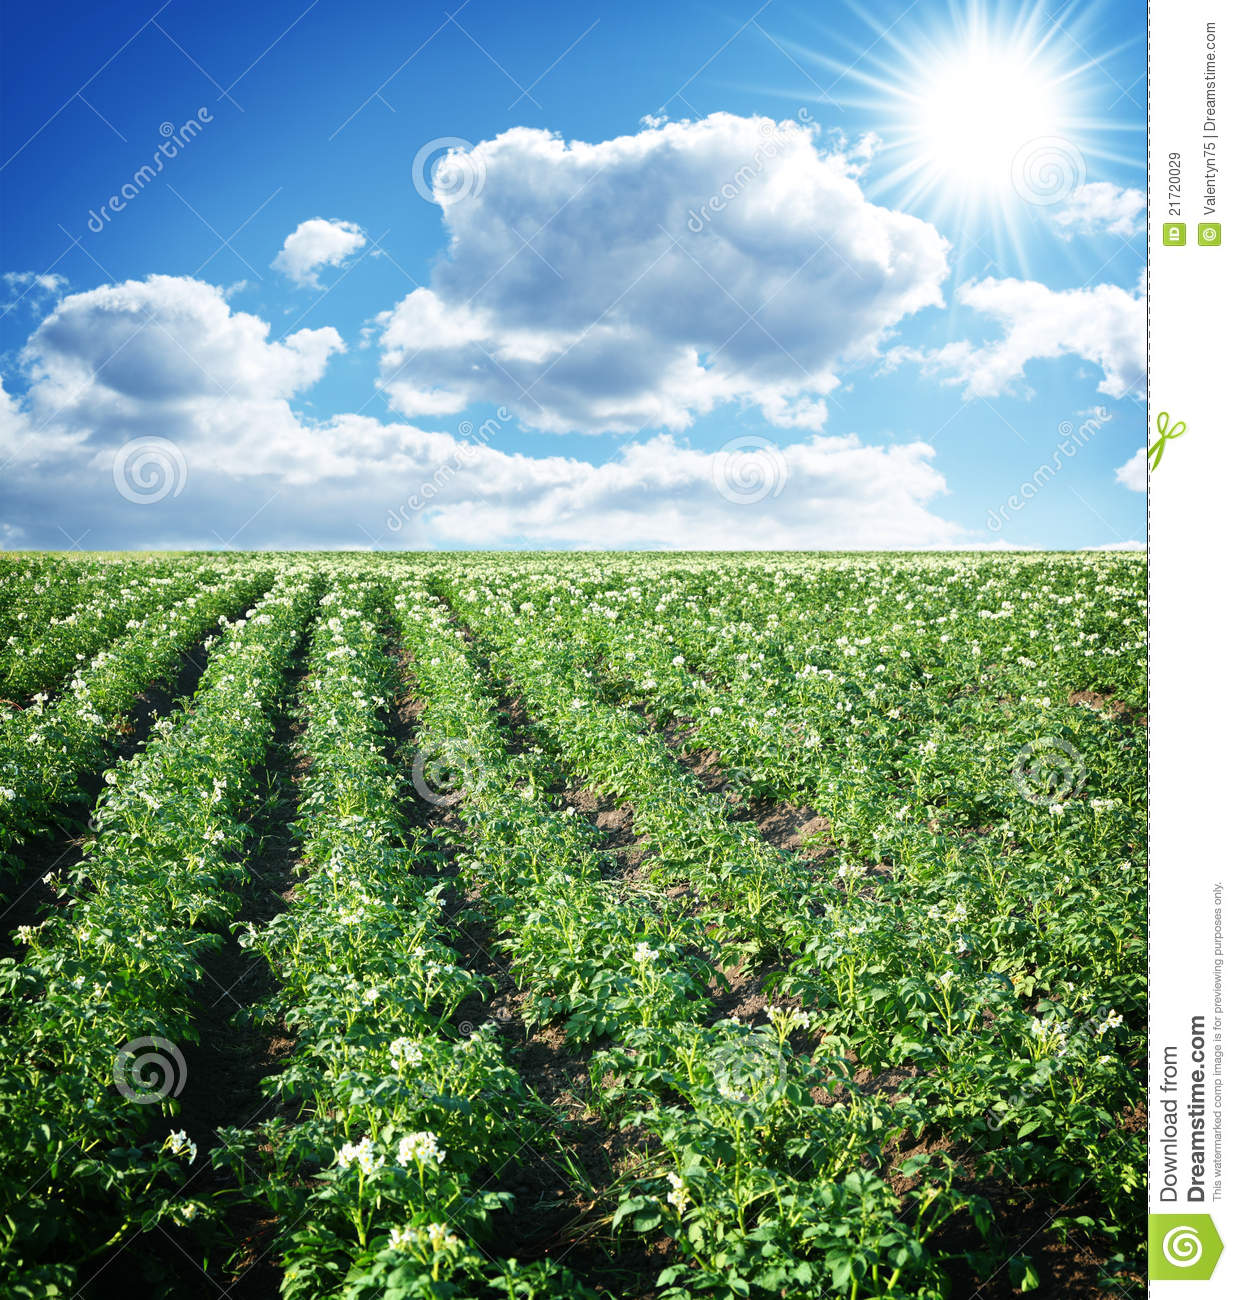 Potato Field Royalty Free Stock Images - Image: 21720029